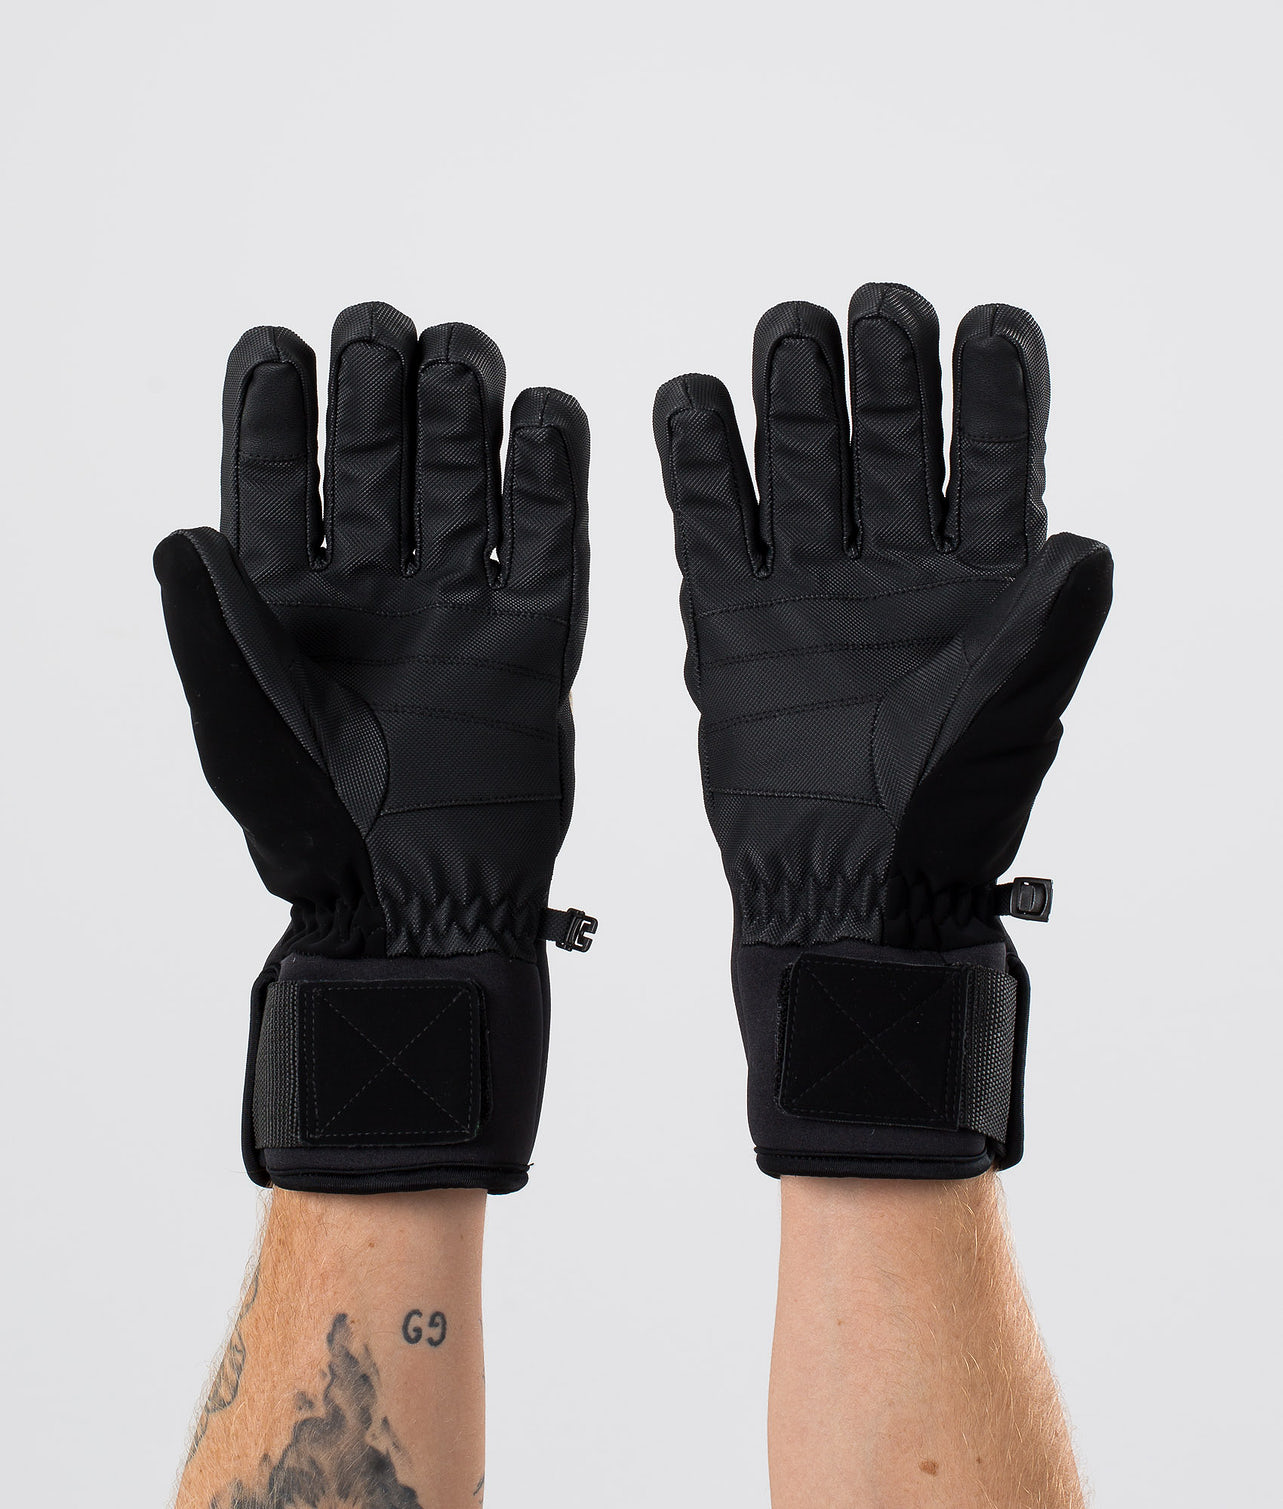 Buy Ace Glove Ski Gloves from Dope at Ridestore.com - Always free shipping, free returns and 30 days money back guarantee